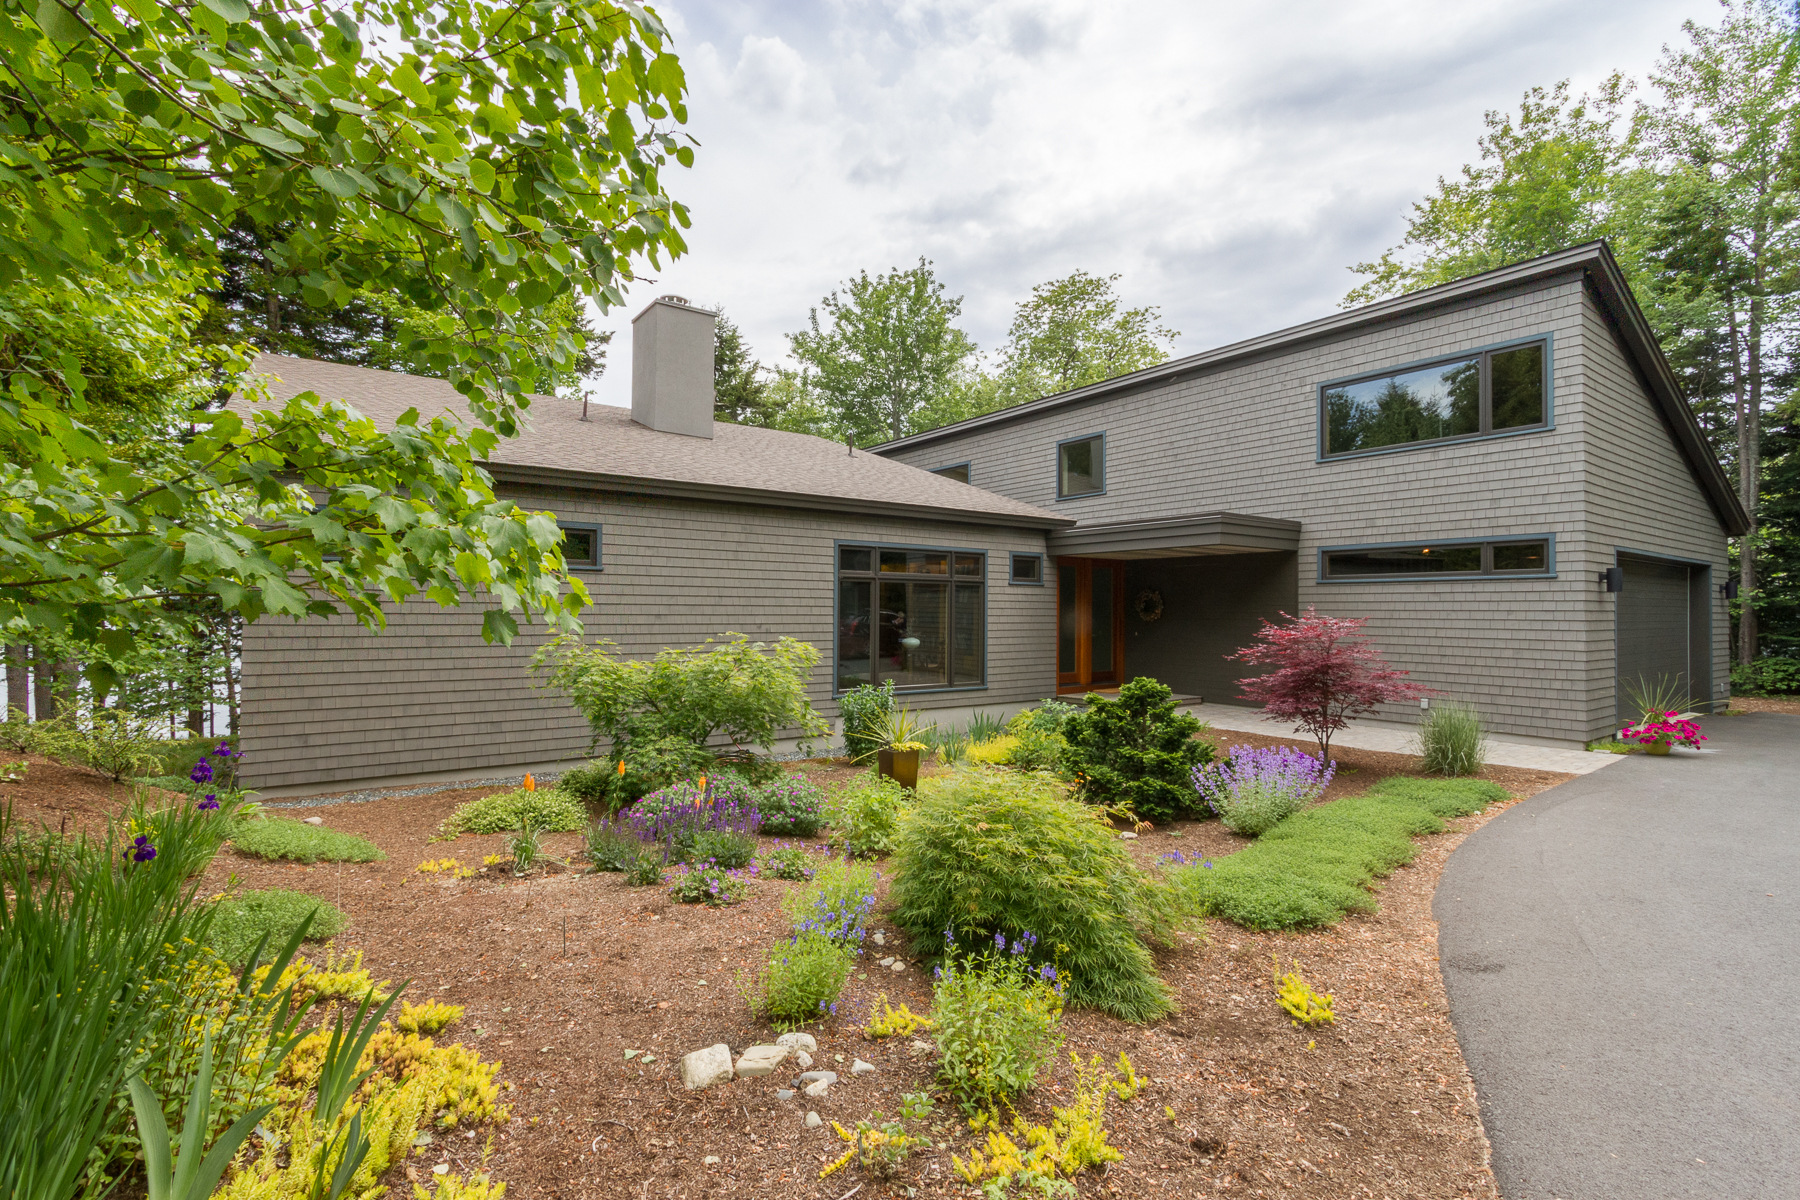 Single Family Home for Sale at 185 Lighthouse Road Stockton Springs, Maine 04981 United States